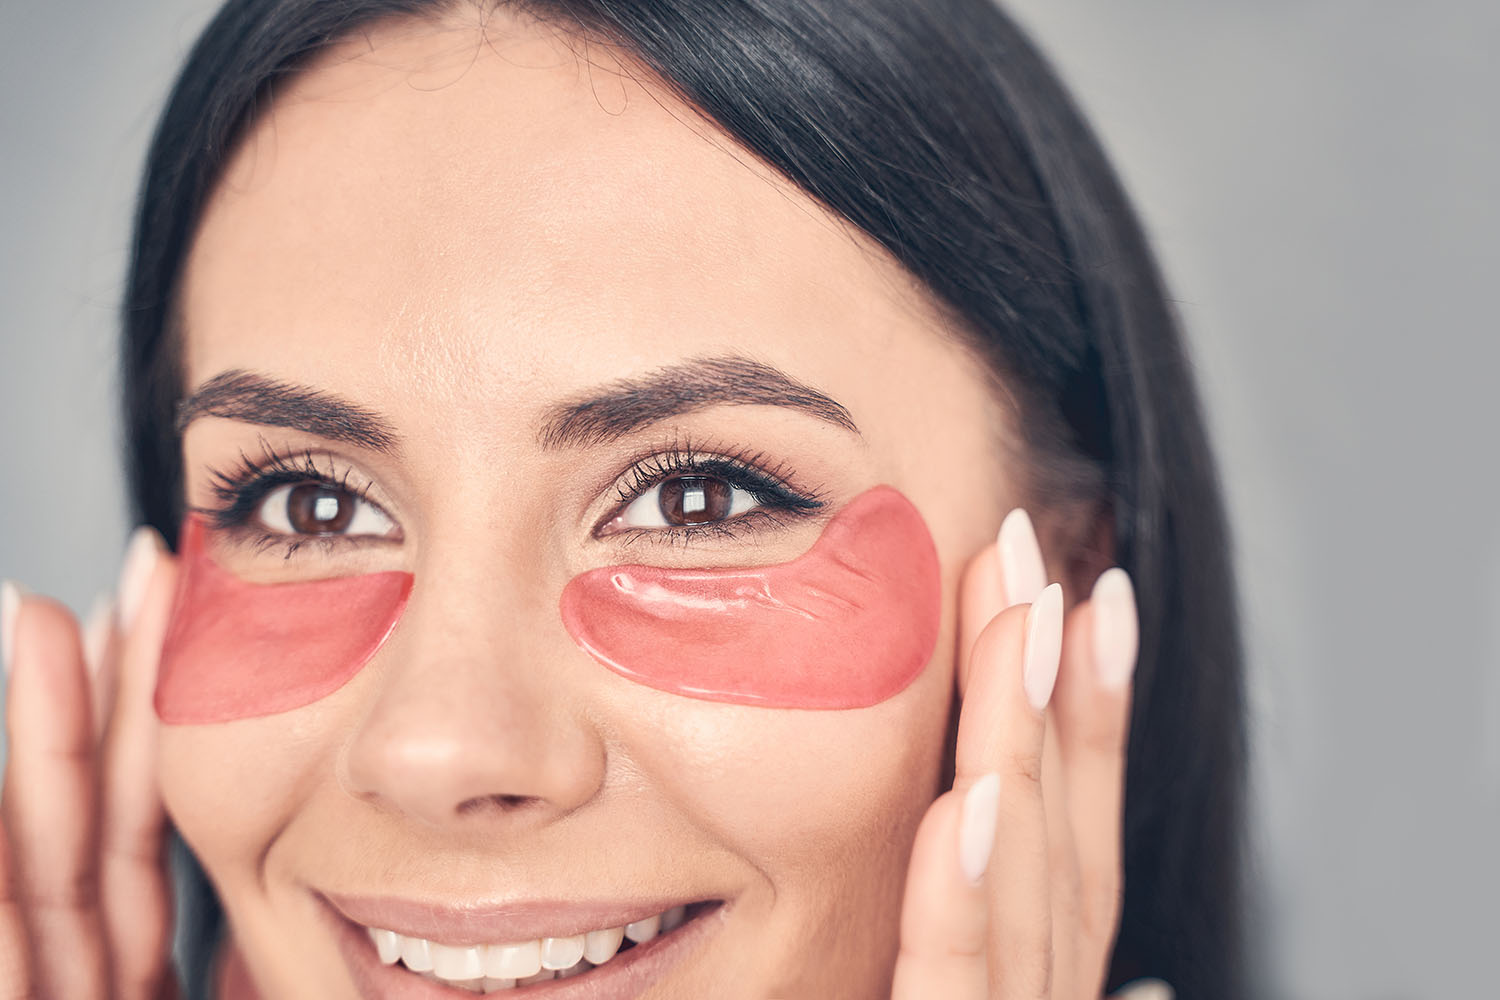 Girl with cosmetic patches under her eyes for eyebags